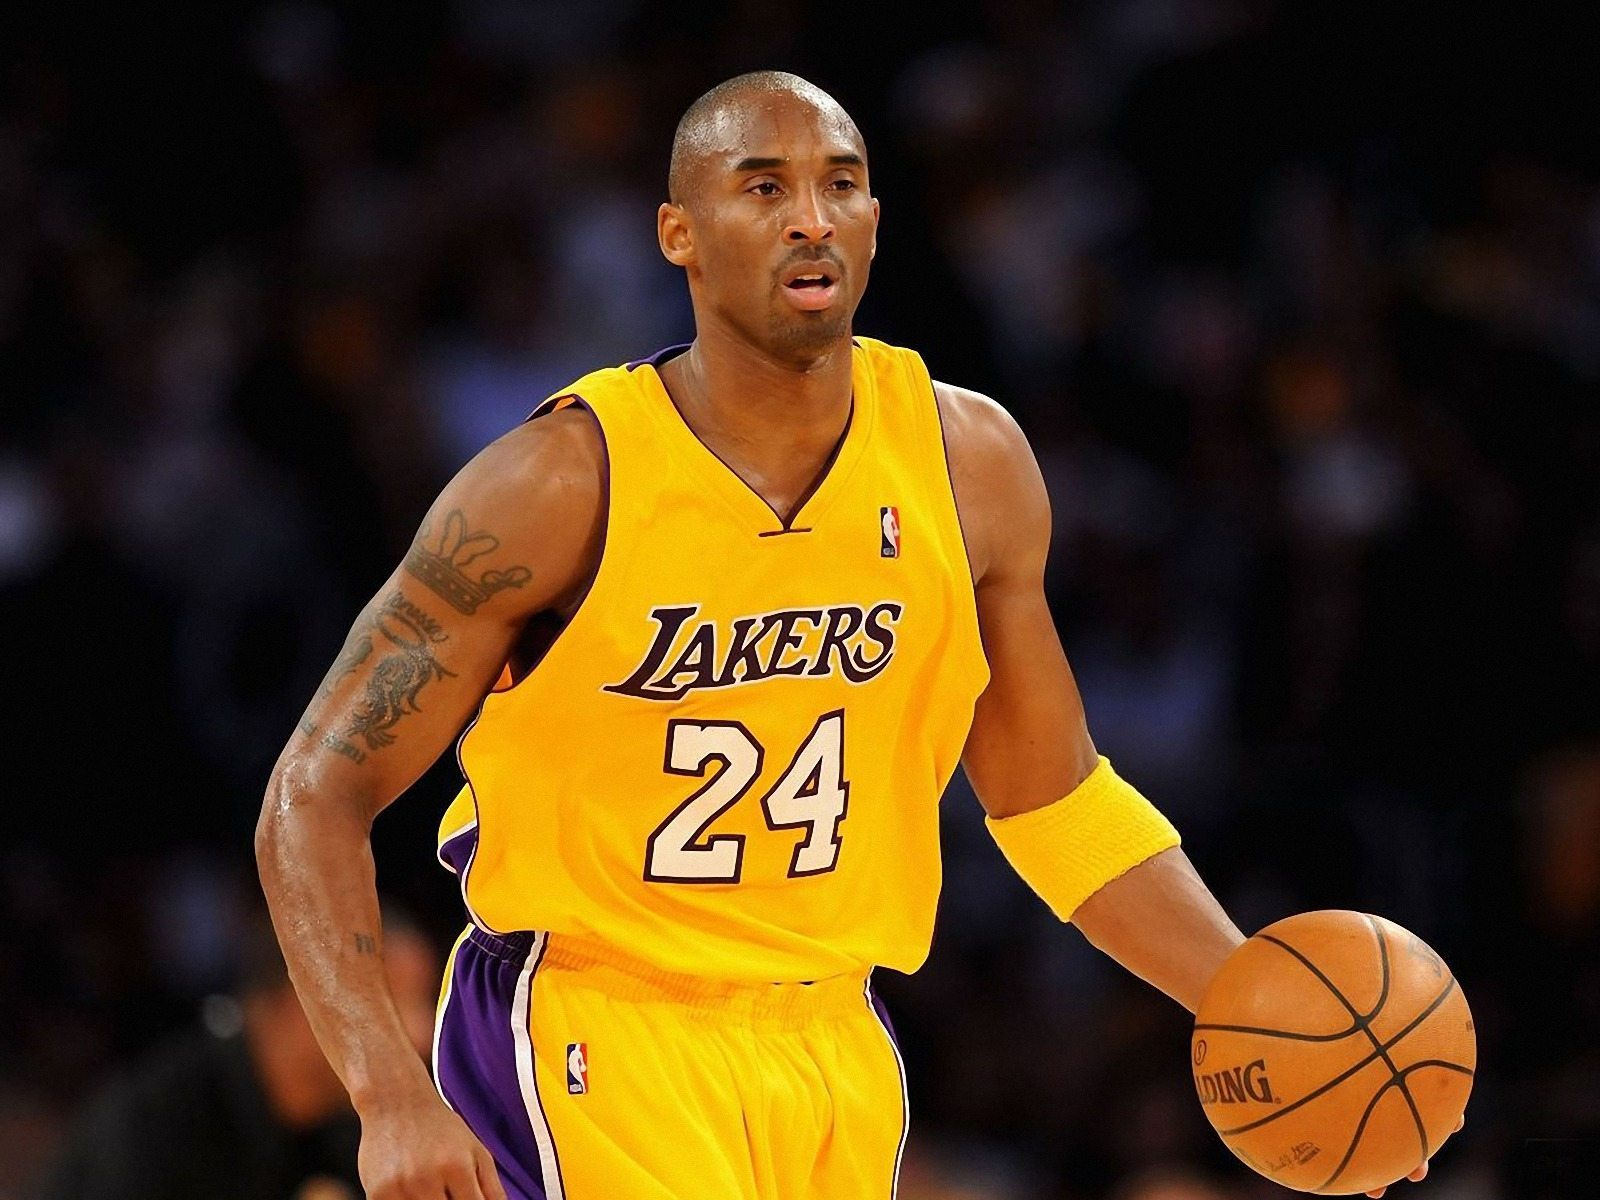 What year did Kobe Bryant retire